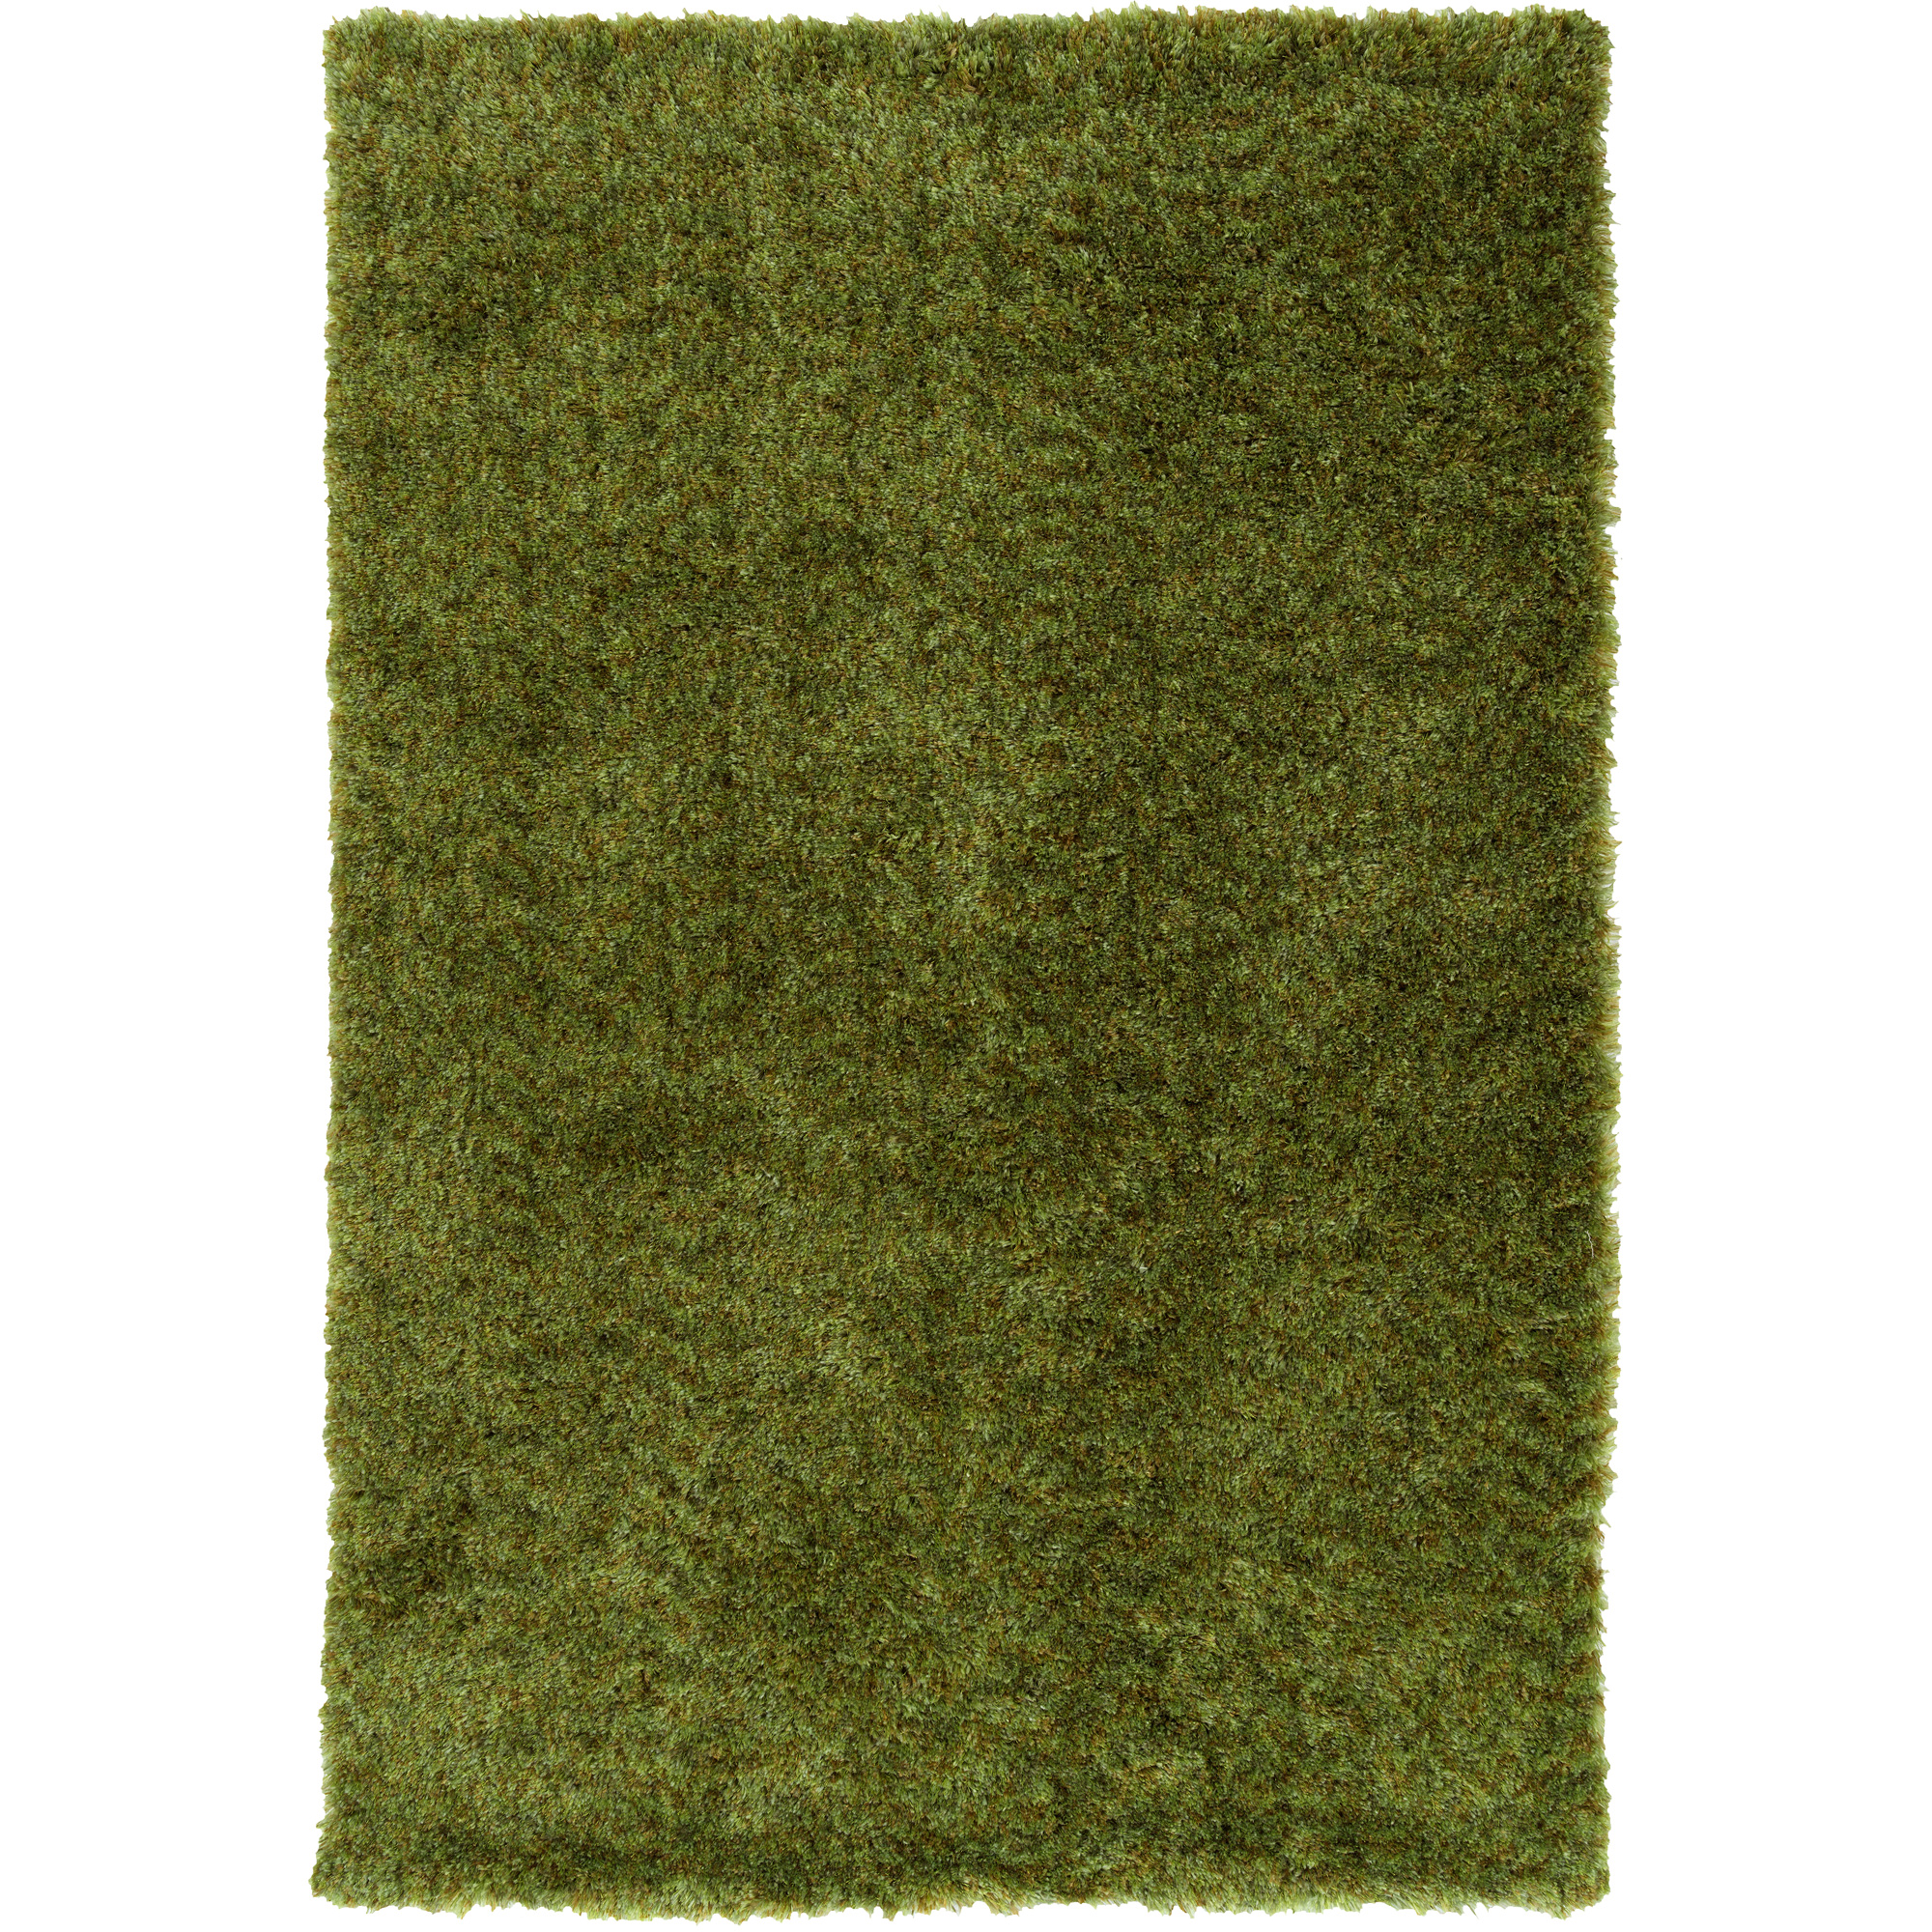 Dalyn Rug | Cabot Moss 8x10 Area Rug